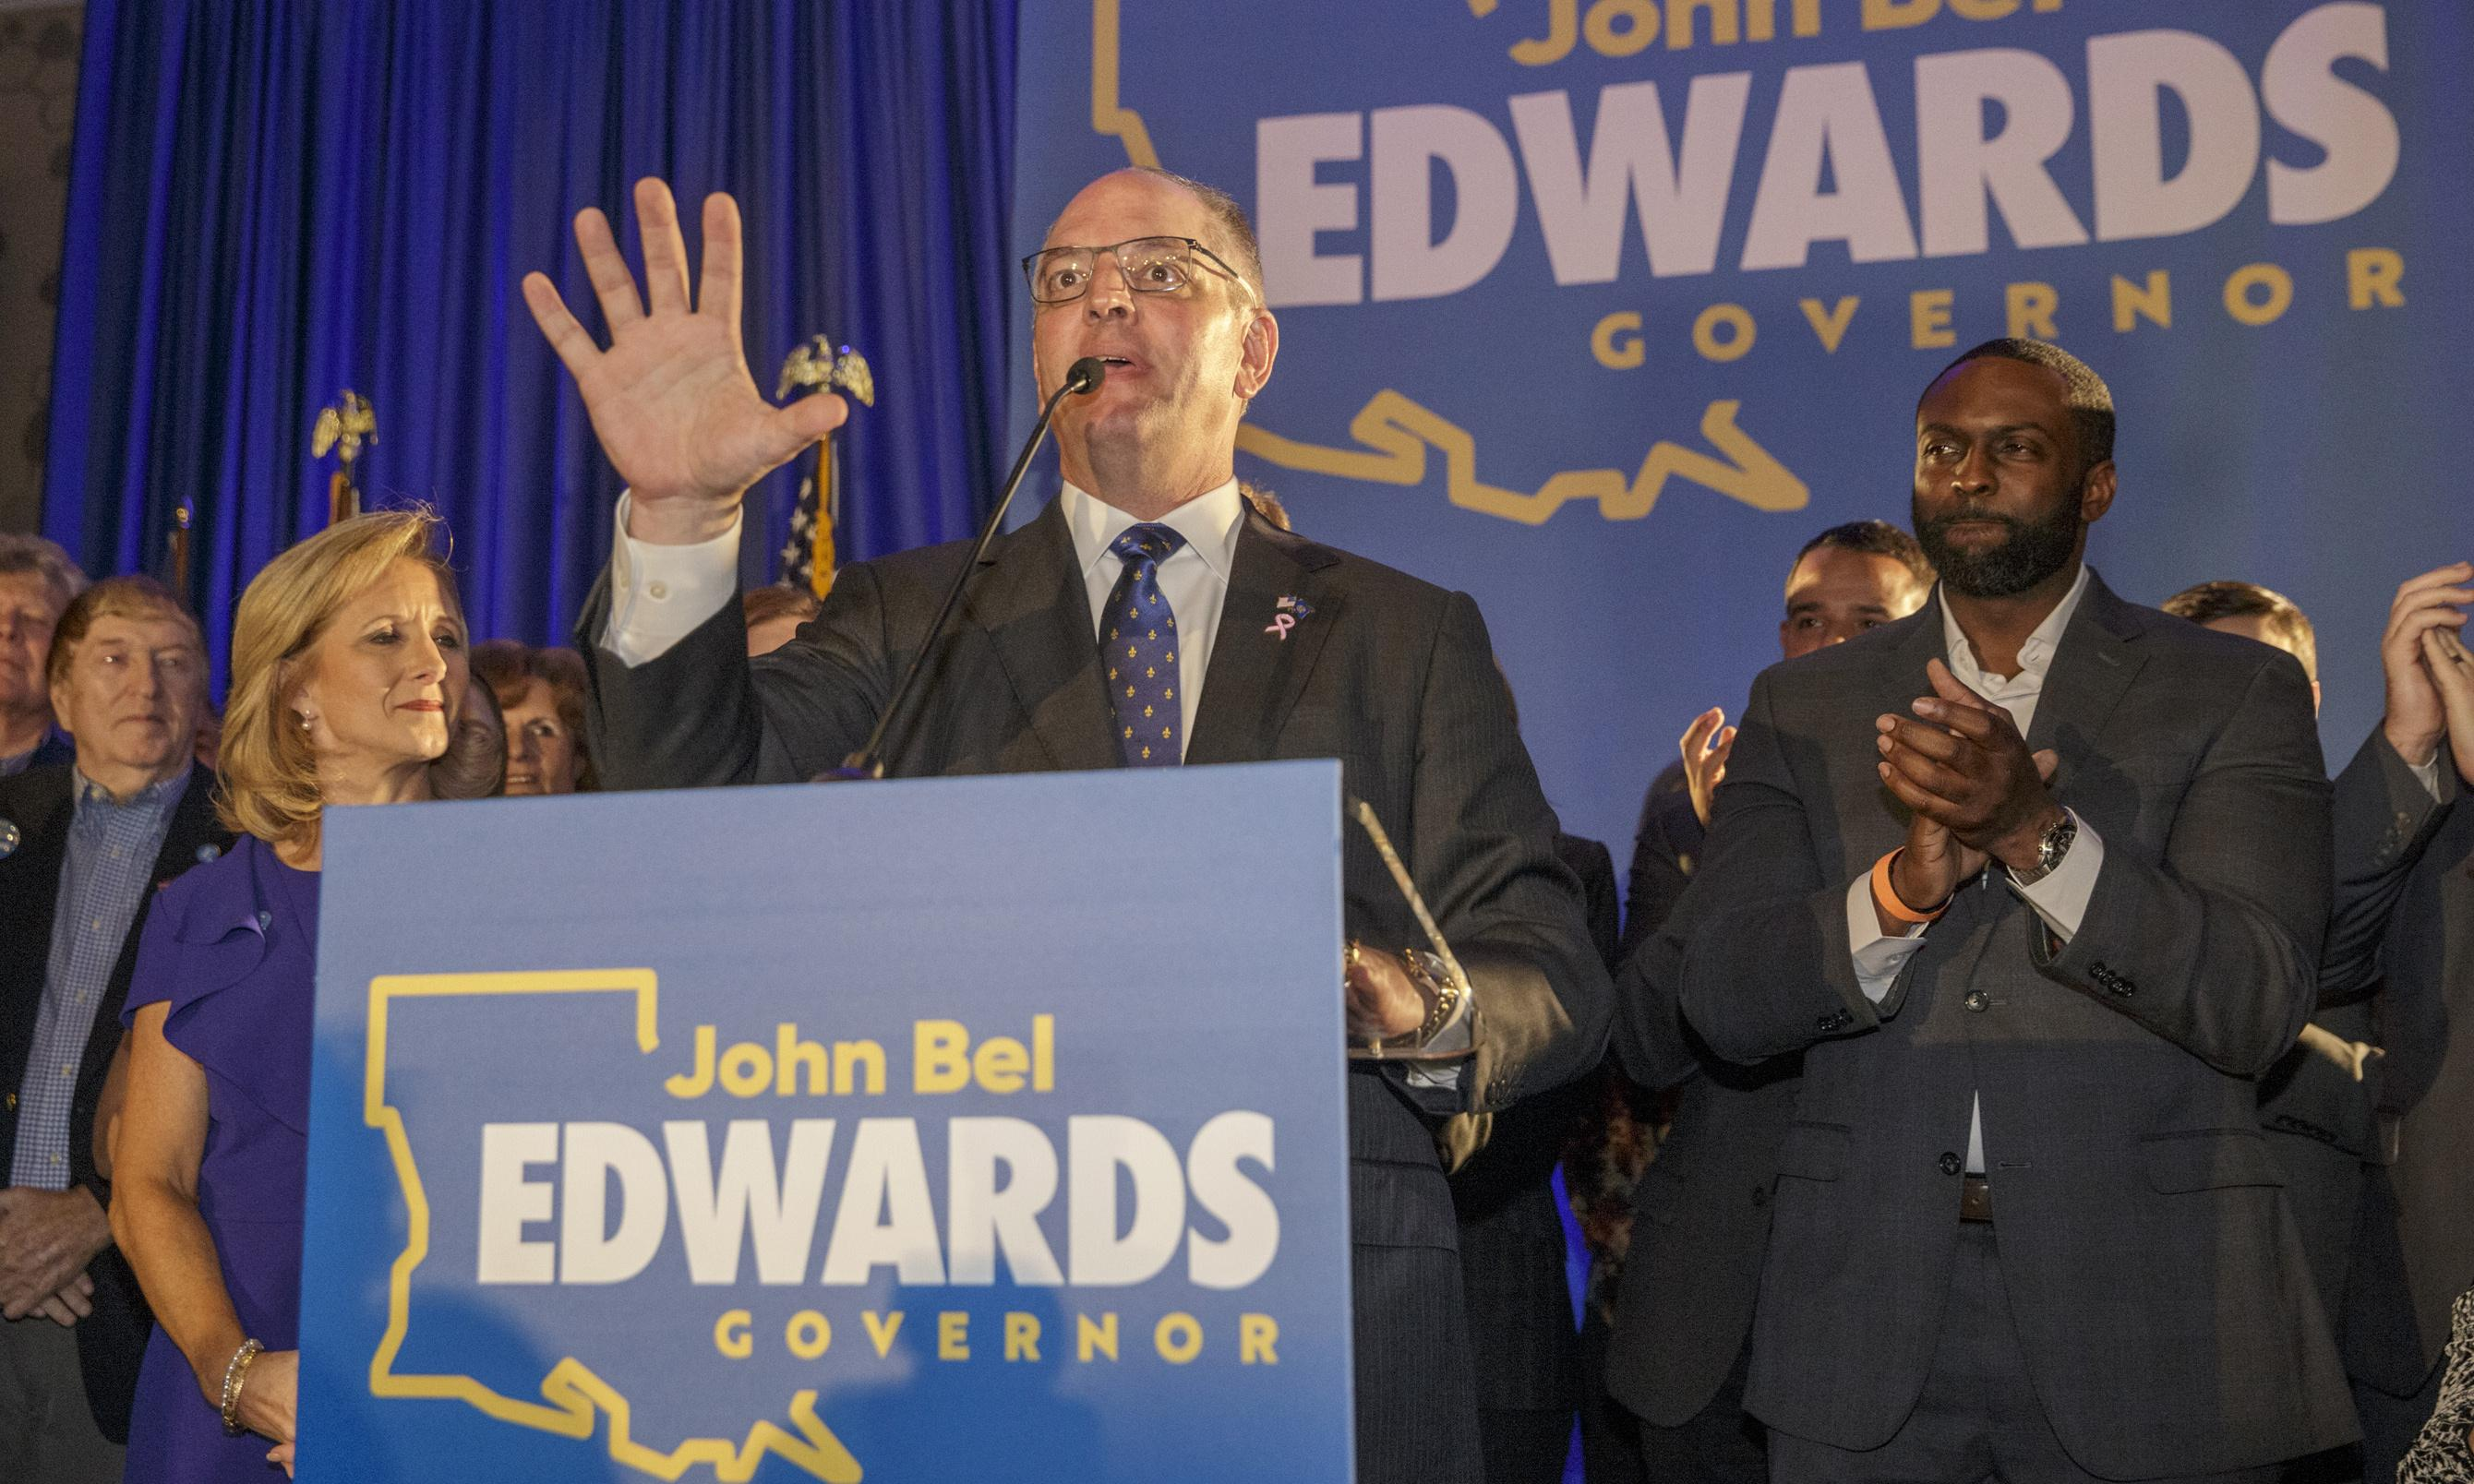 Deep south's only Democratic governor heads into election runoff